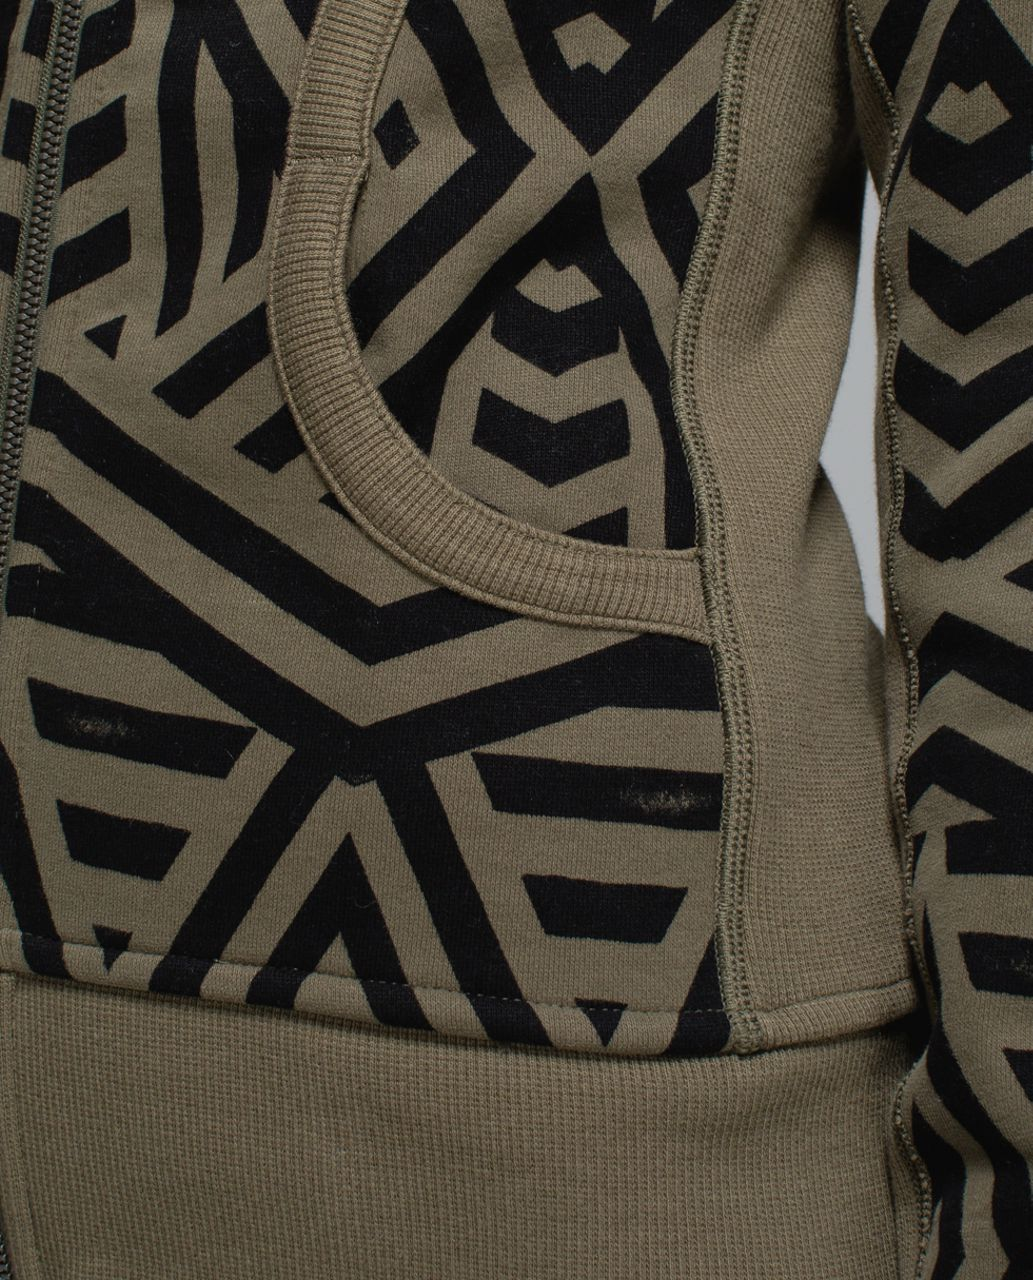 Lululemon Scuba Hoodie II - Chevron Shuffle Fatigue Green Black / Fatigue Green